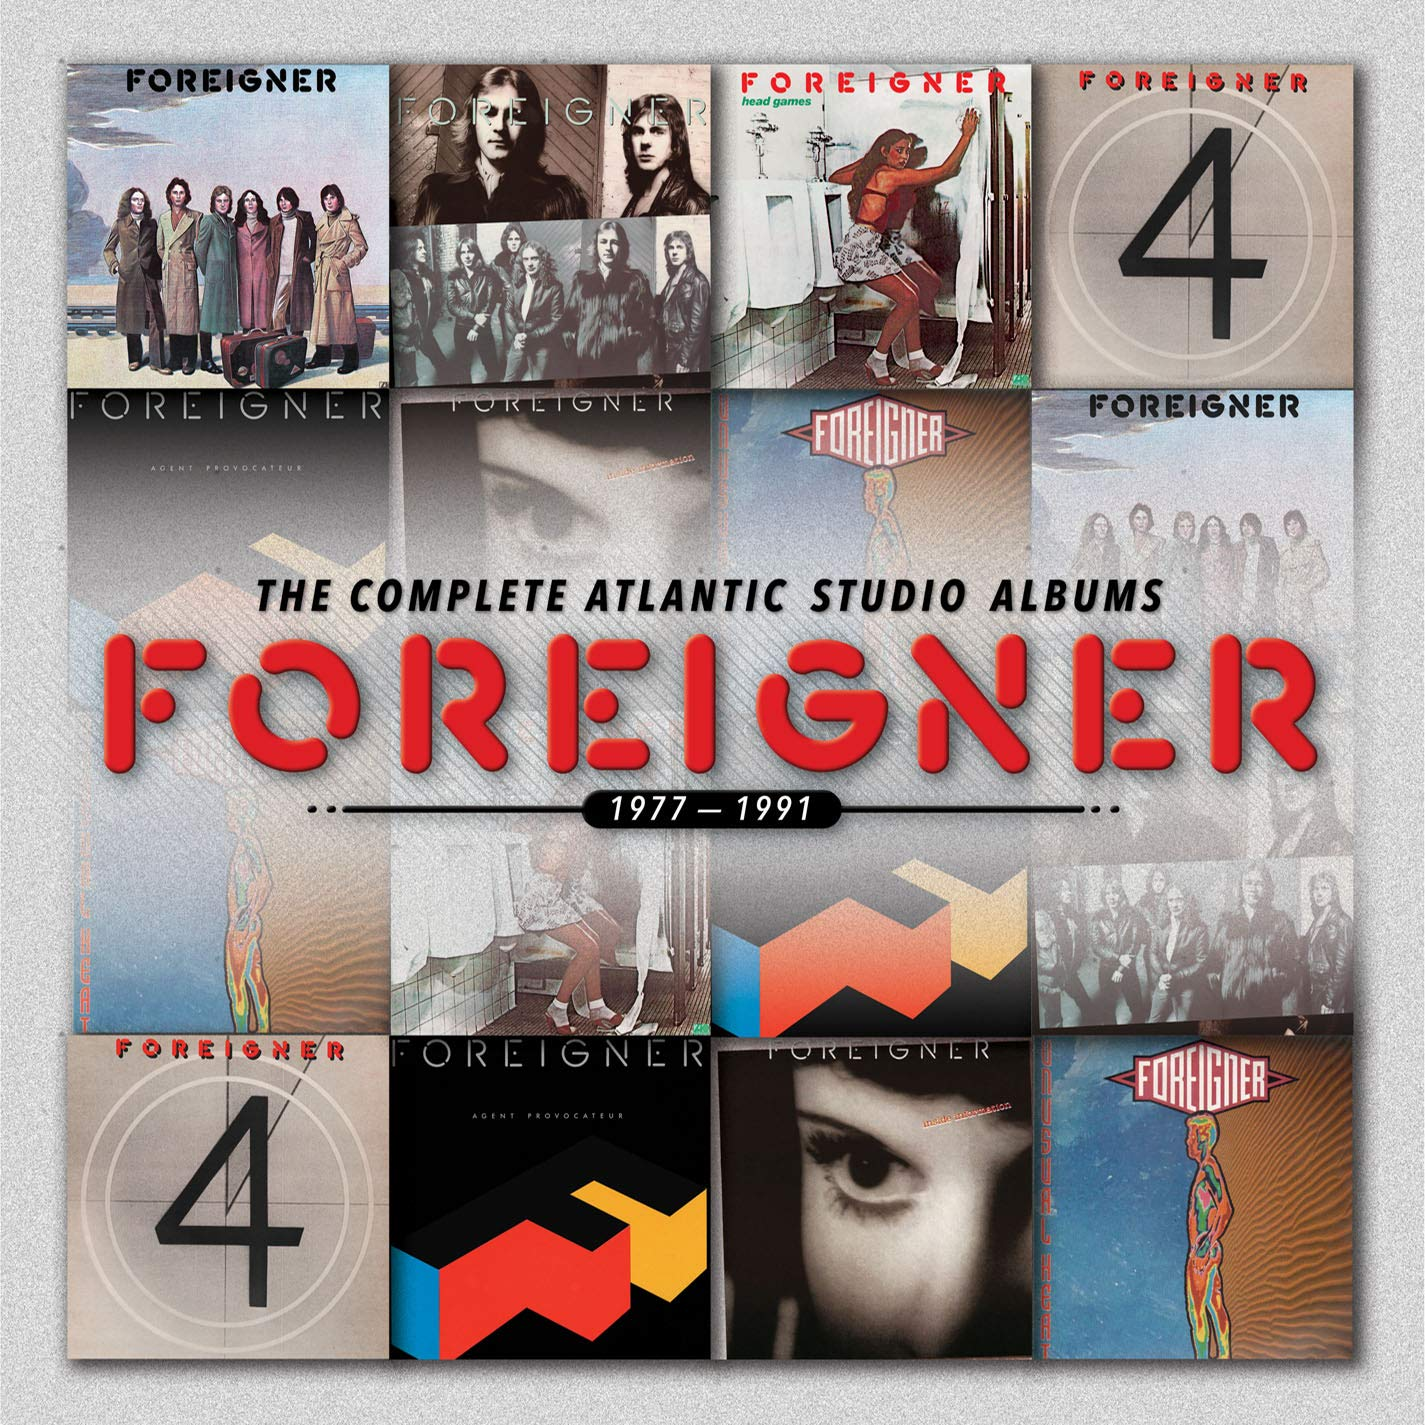 The Complete Atlantic Studio Albums 1977-1991